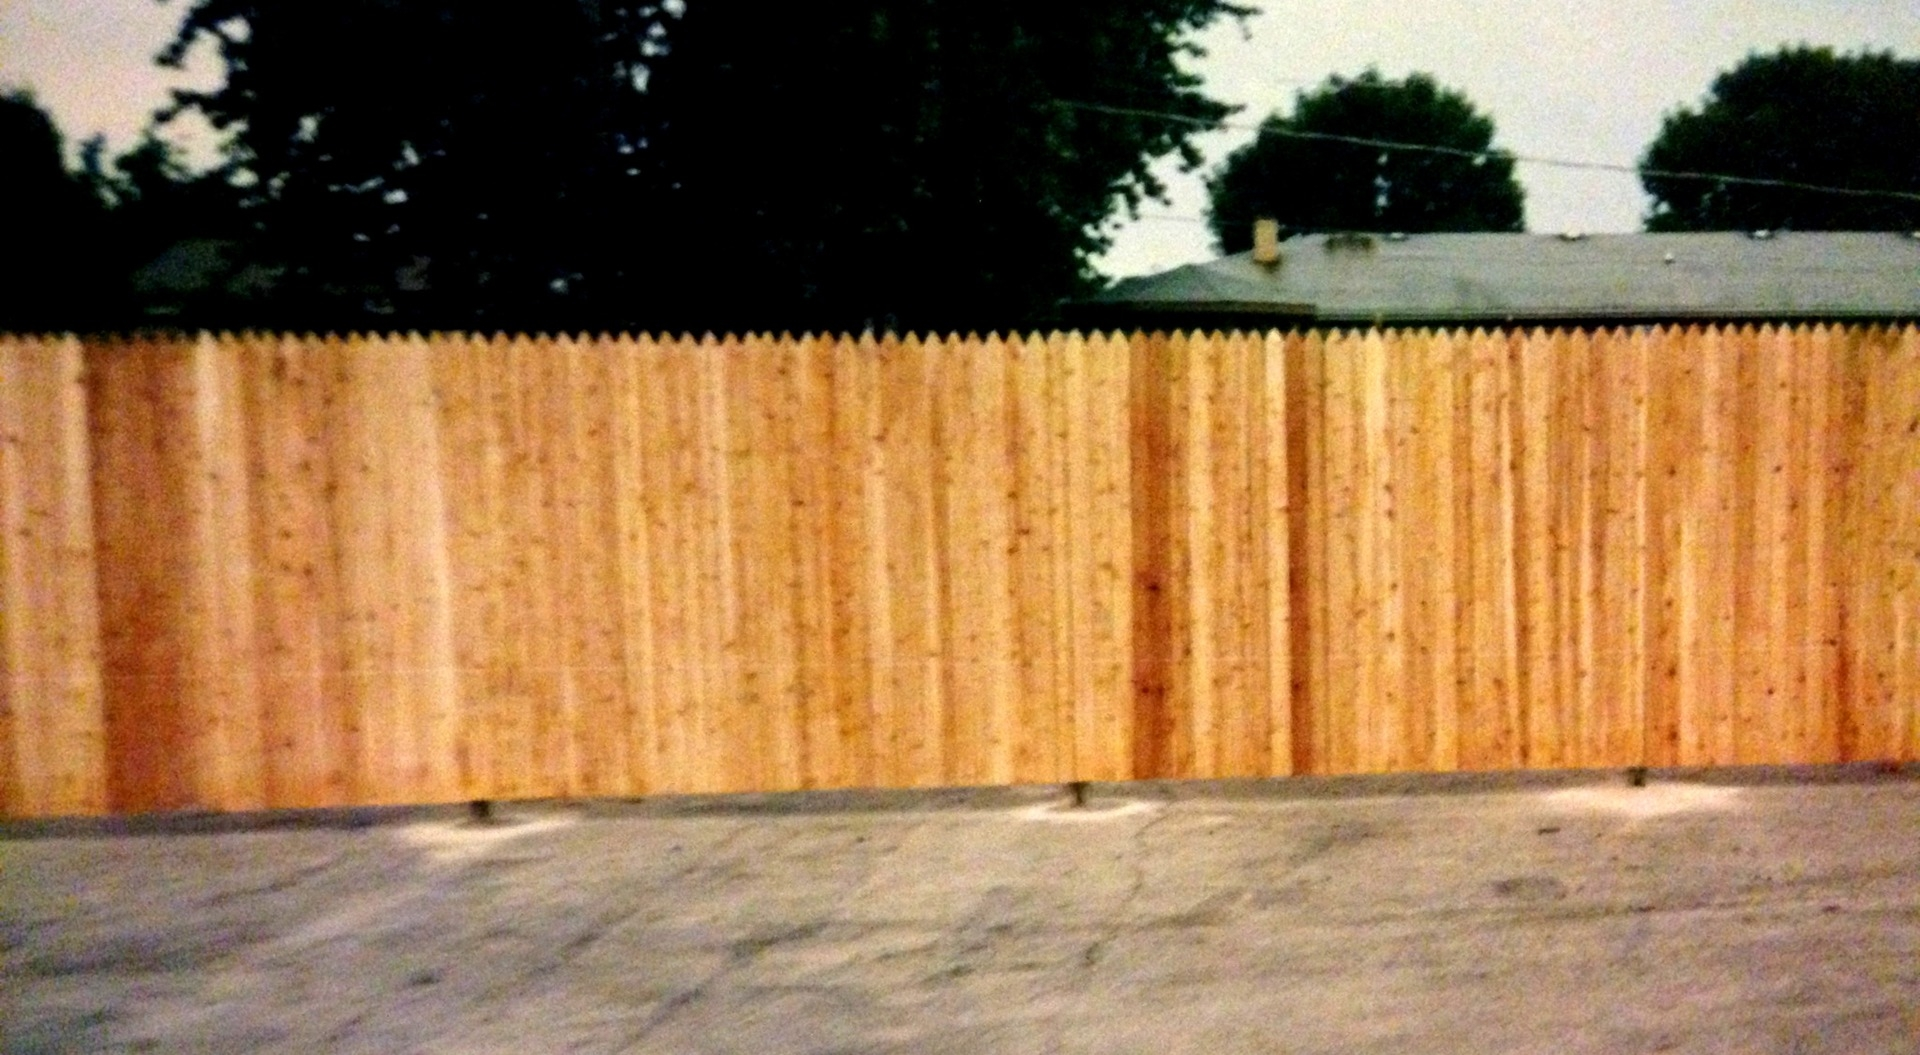 professional fence installation company Gurnee Zion Antioch Libertyville